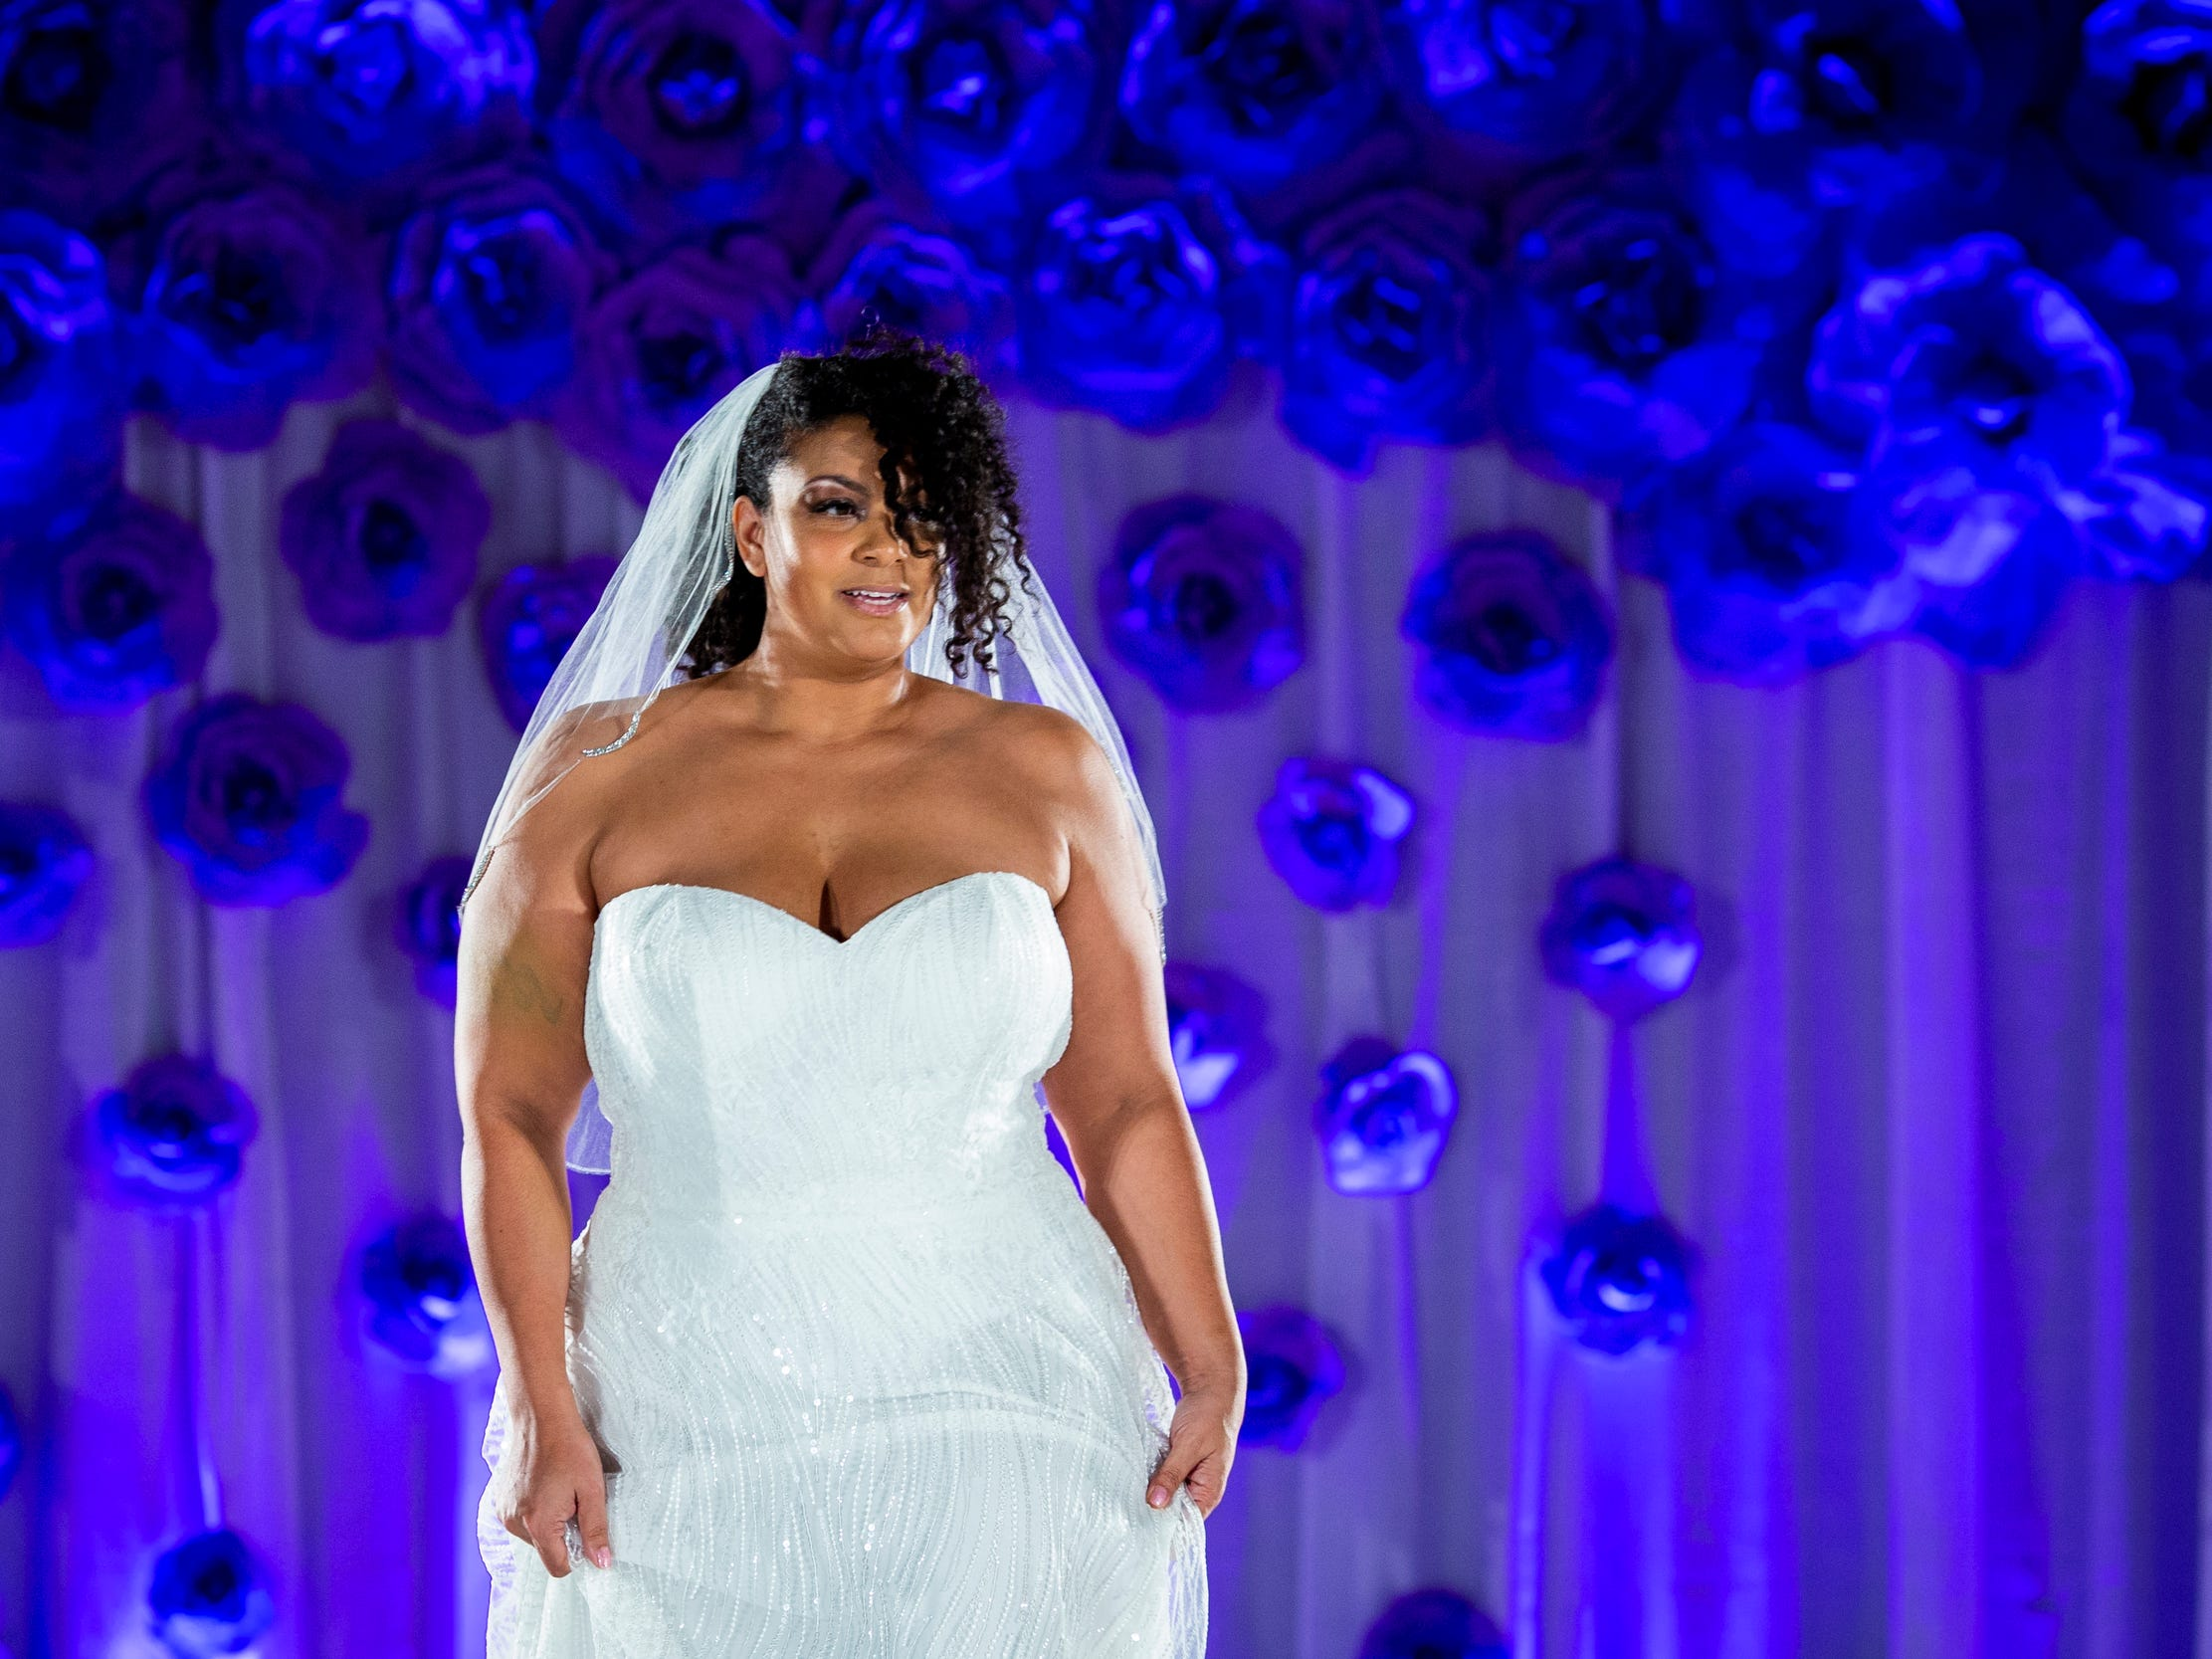 A model walks down the runway in a wedding dress for the fashion show at the Wendy's Bridal Show at the Duke Energy Convention Center Saturday, January 5, 2019 in Downtown Cincinnati.